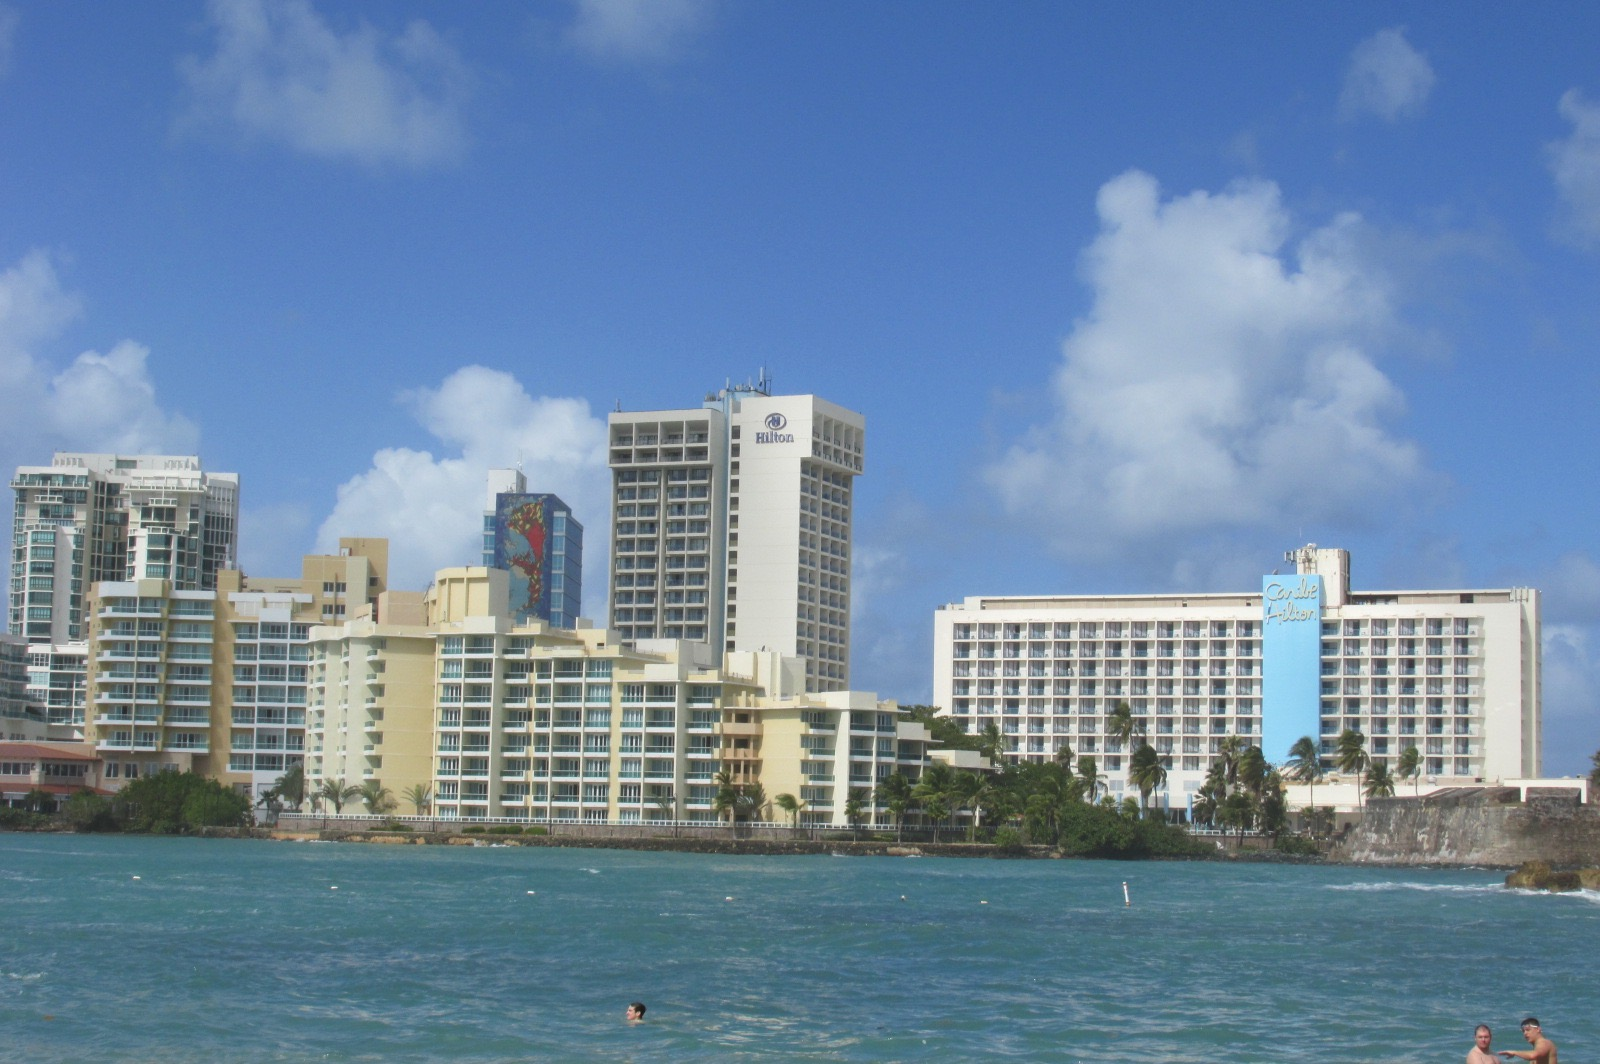 Caribe Hilton from across the lagoon